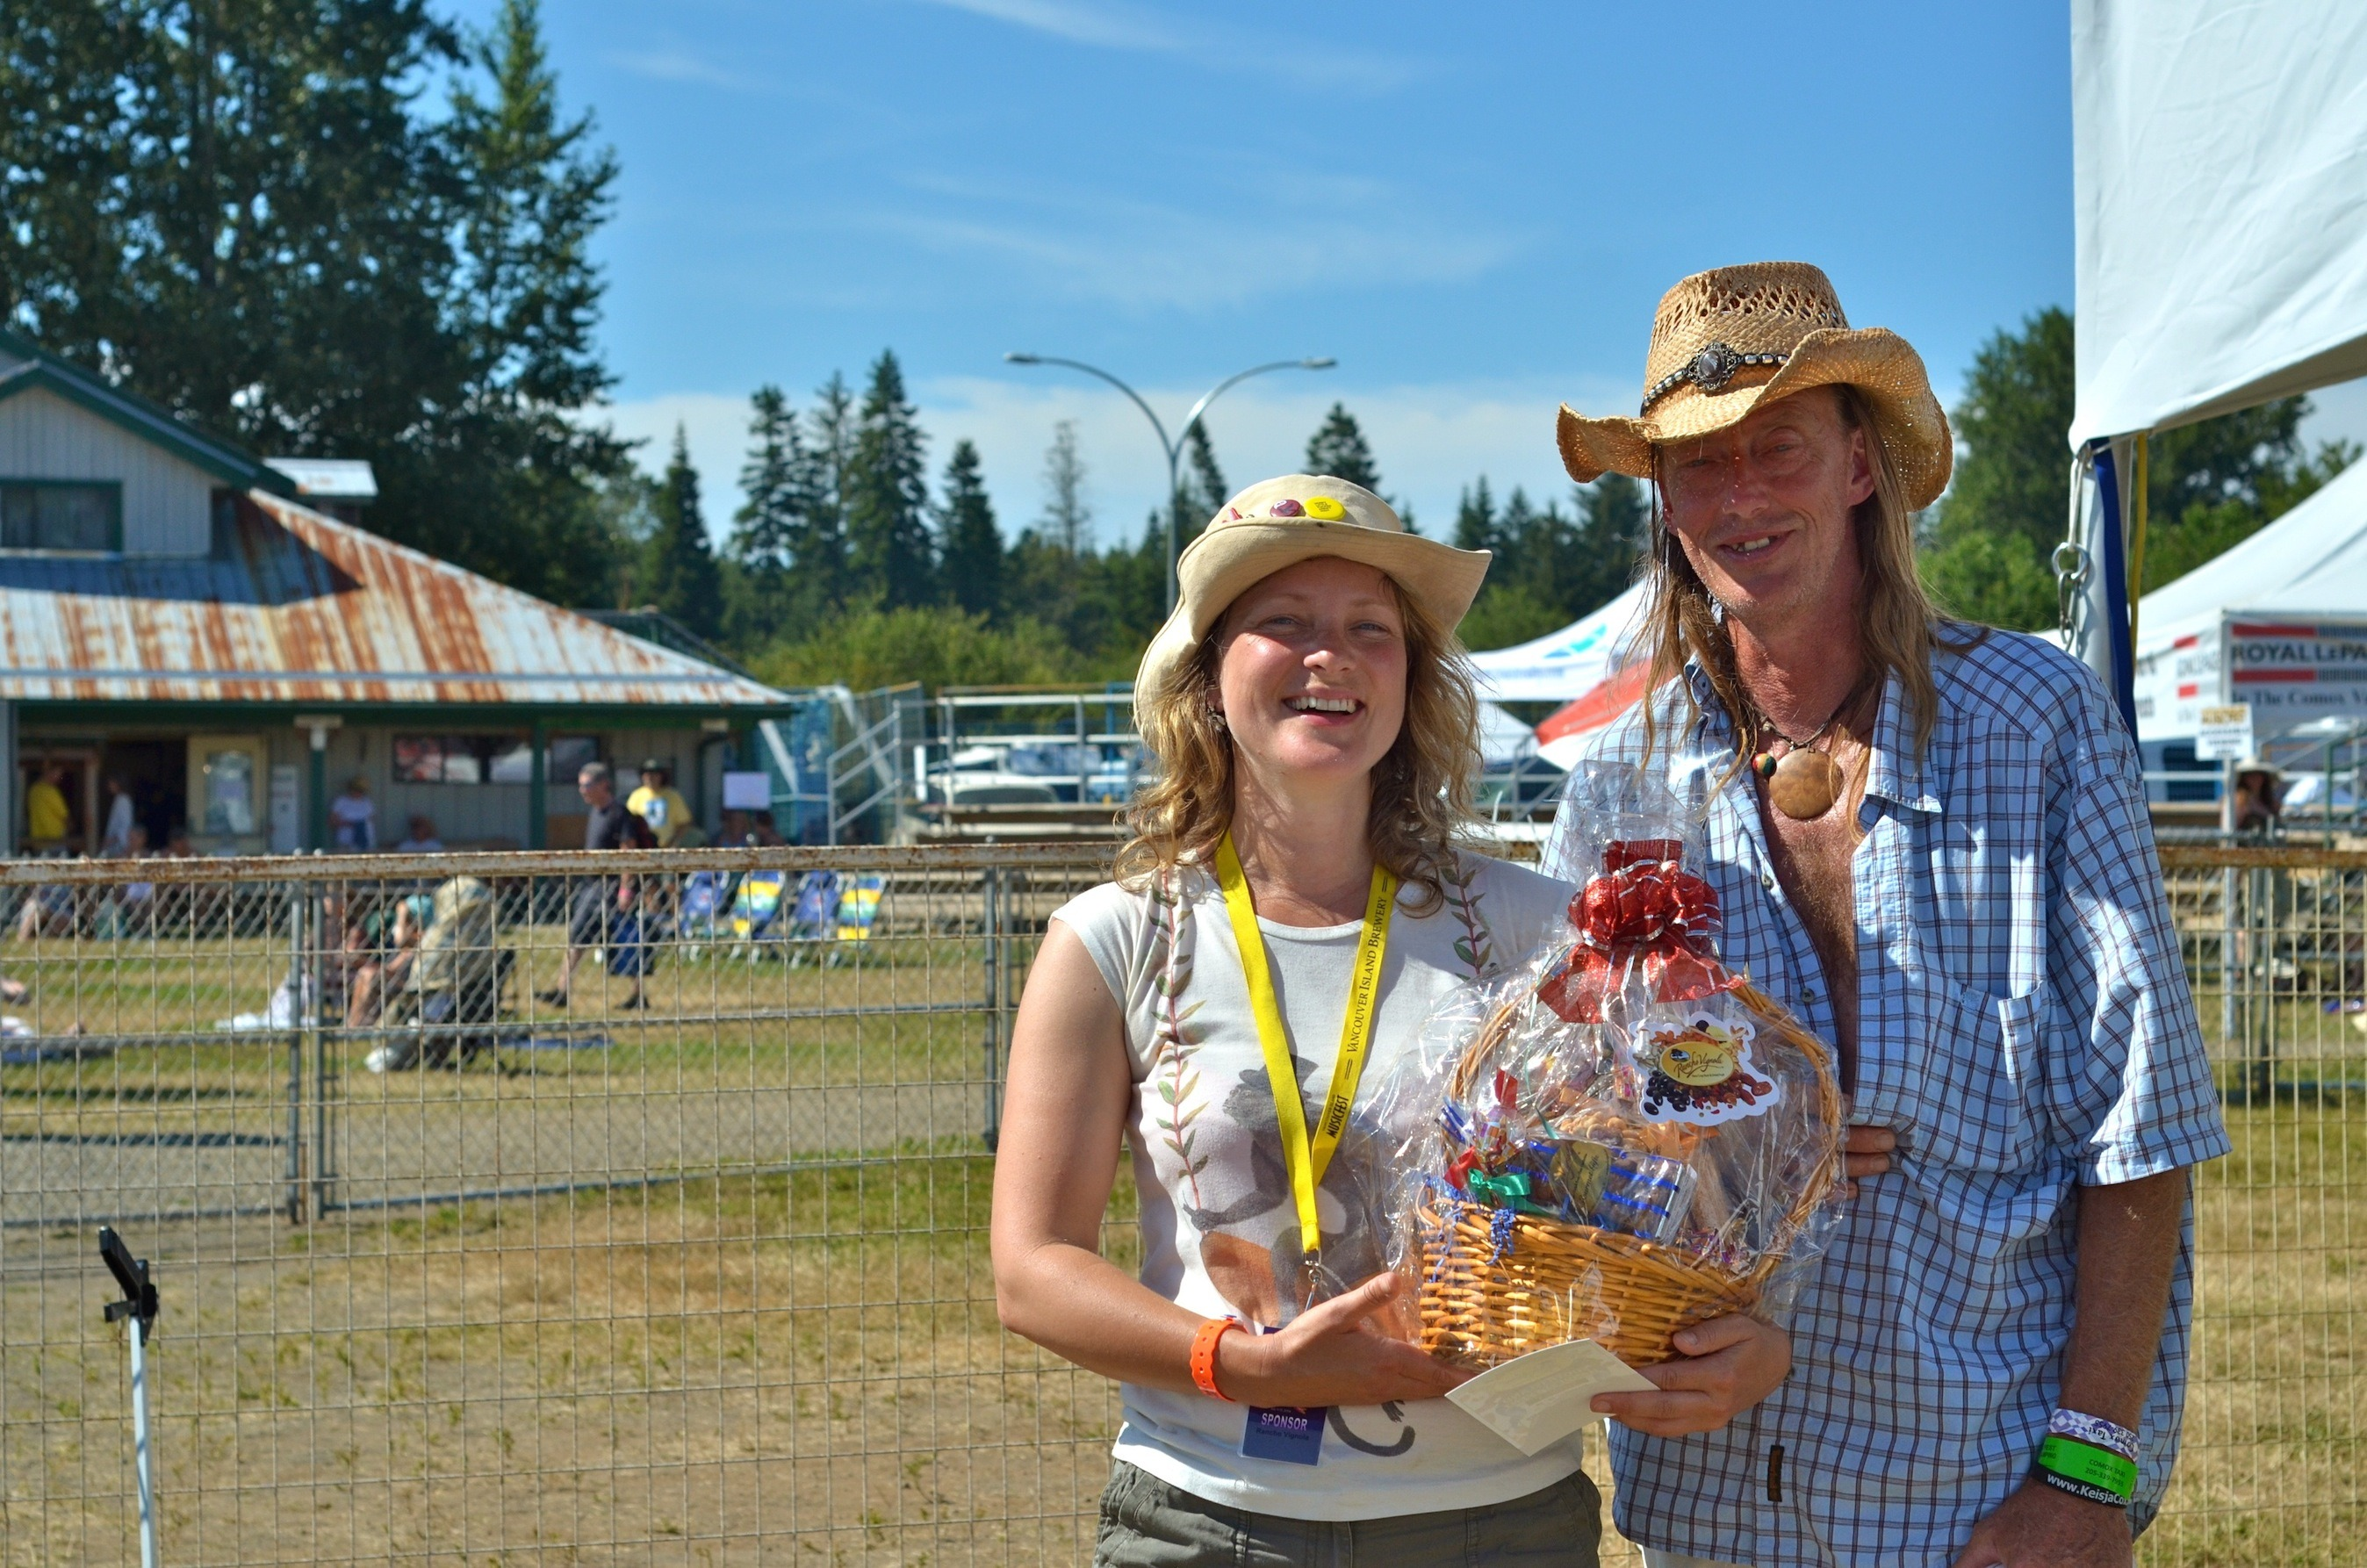 Congratulations, Mike Nultz from Royston, lucky winner of the Rancho Vignola gourmet gift basket at Vancouver Island MusicFest!